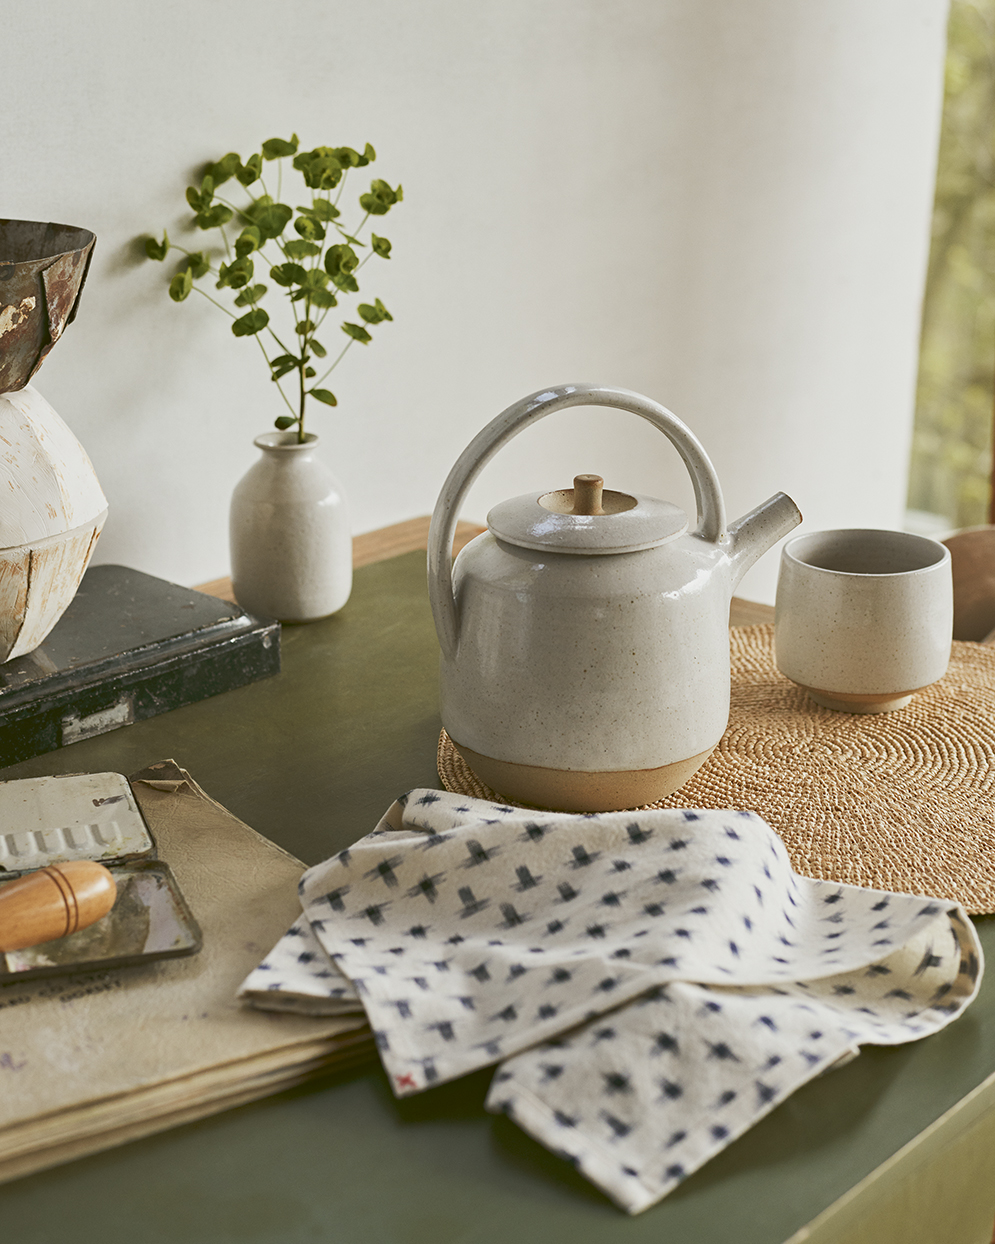 teapot and kitchen towel on counter